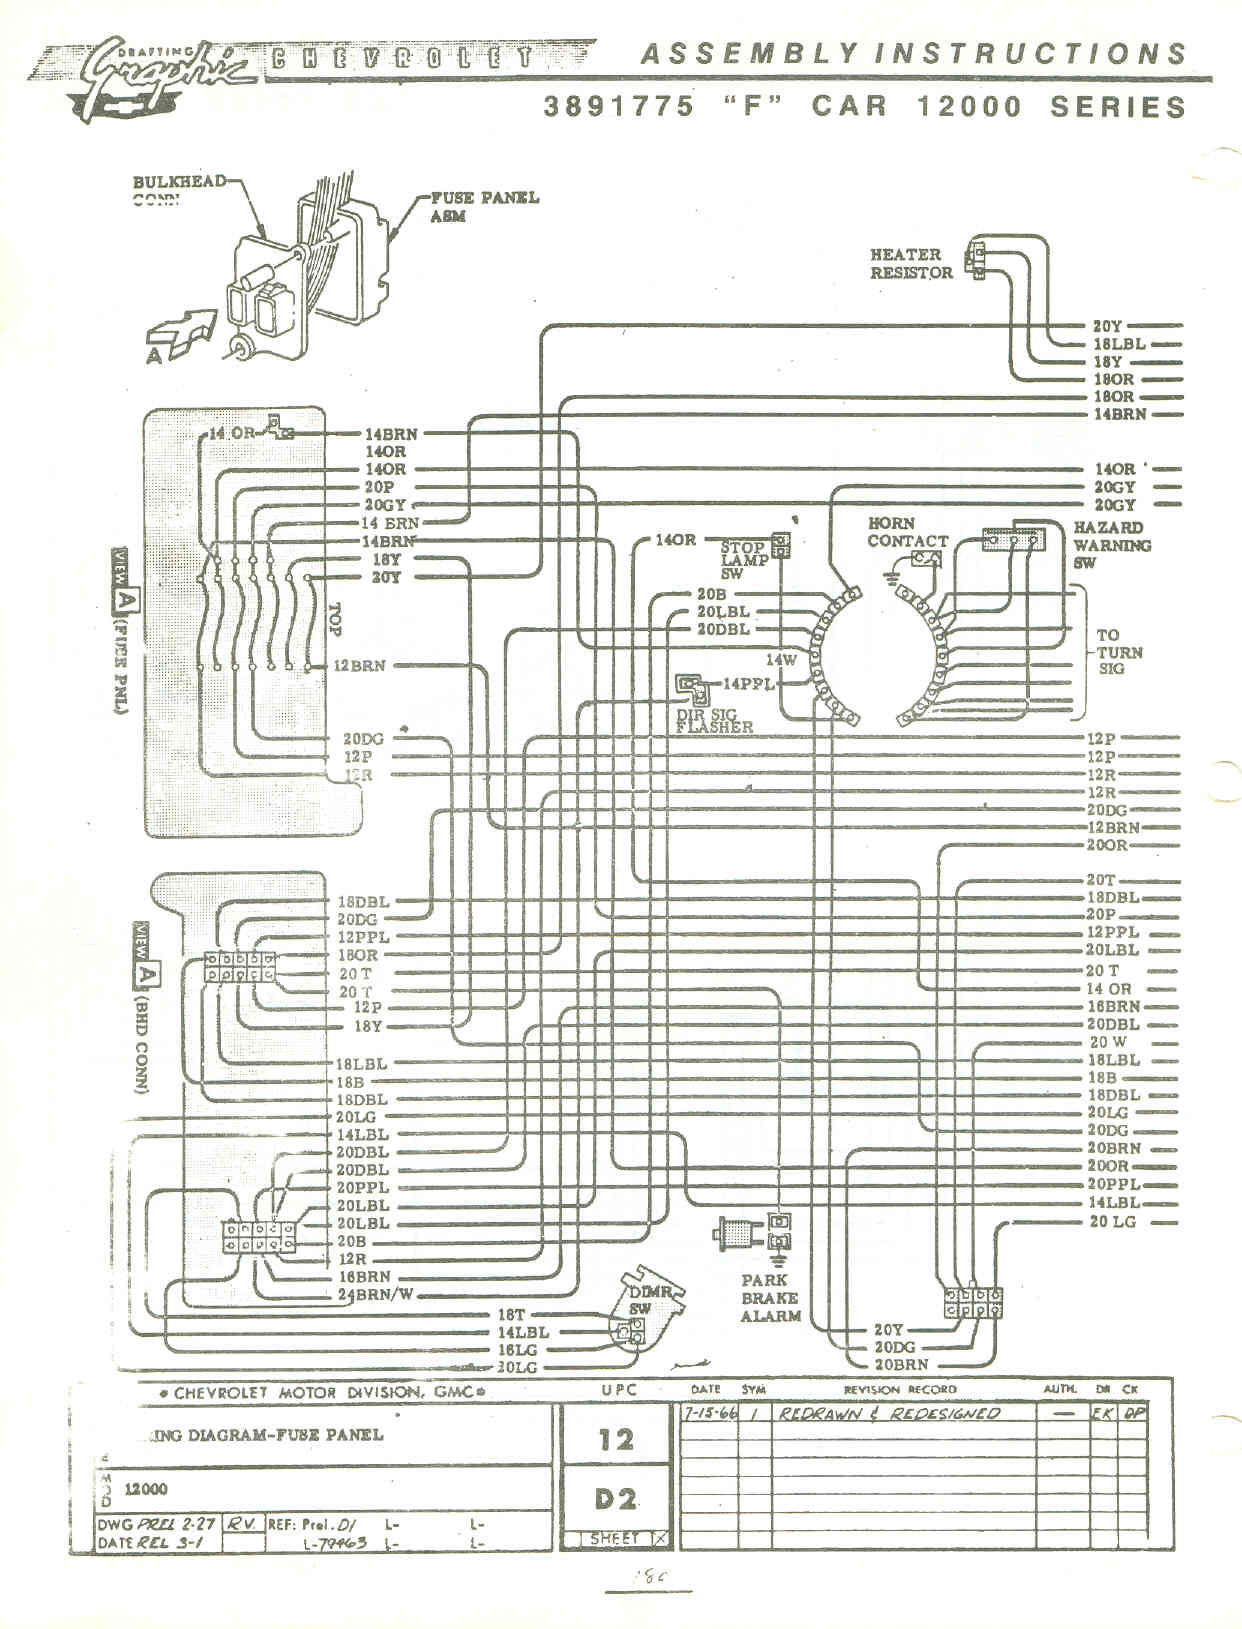 66 chevelle wiring diagram pdf